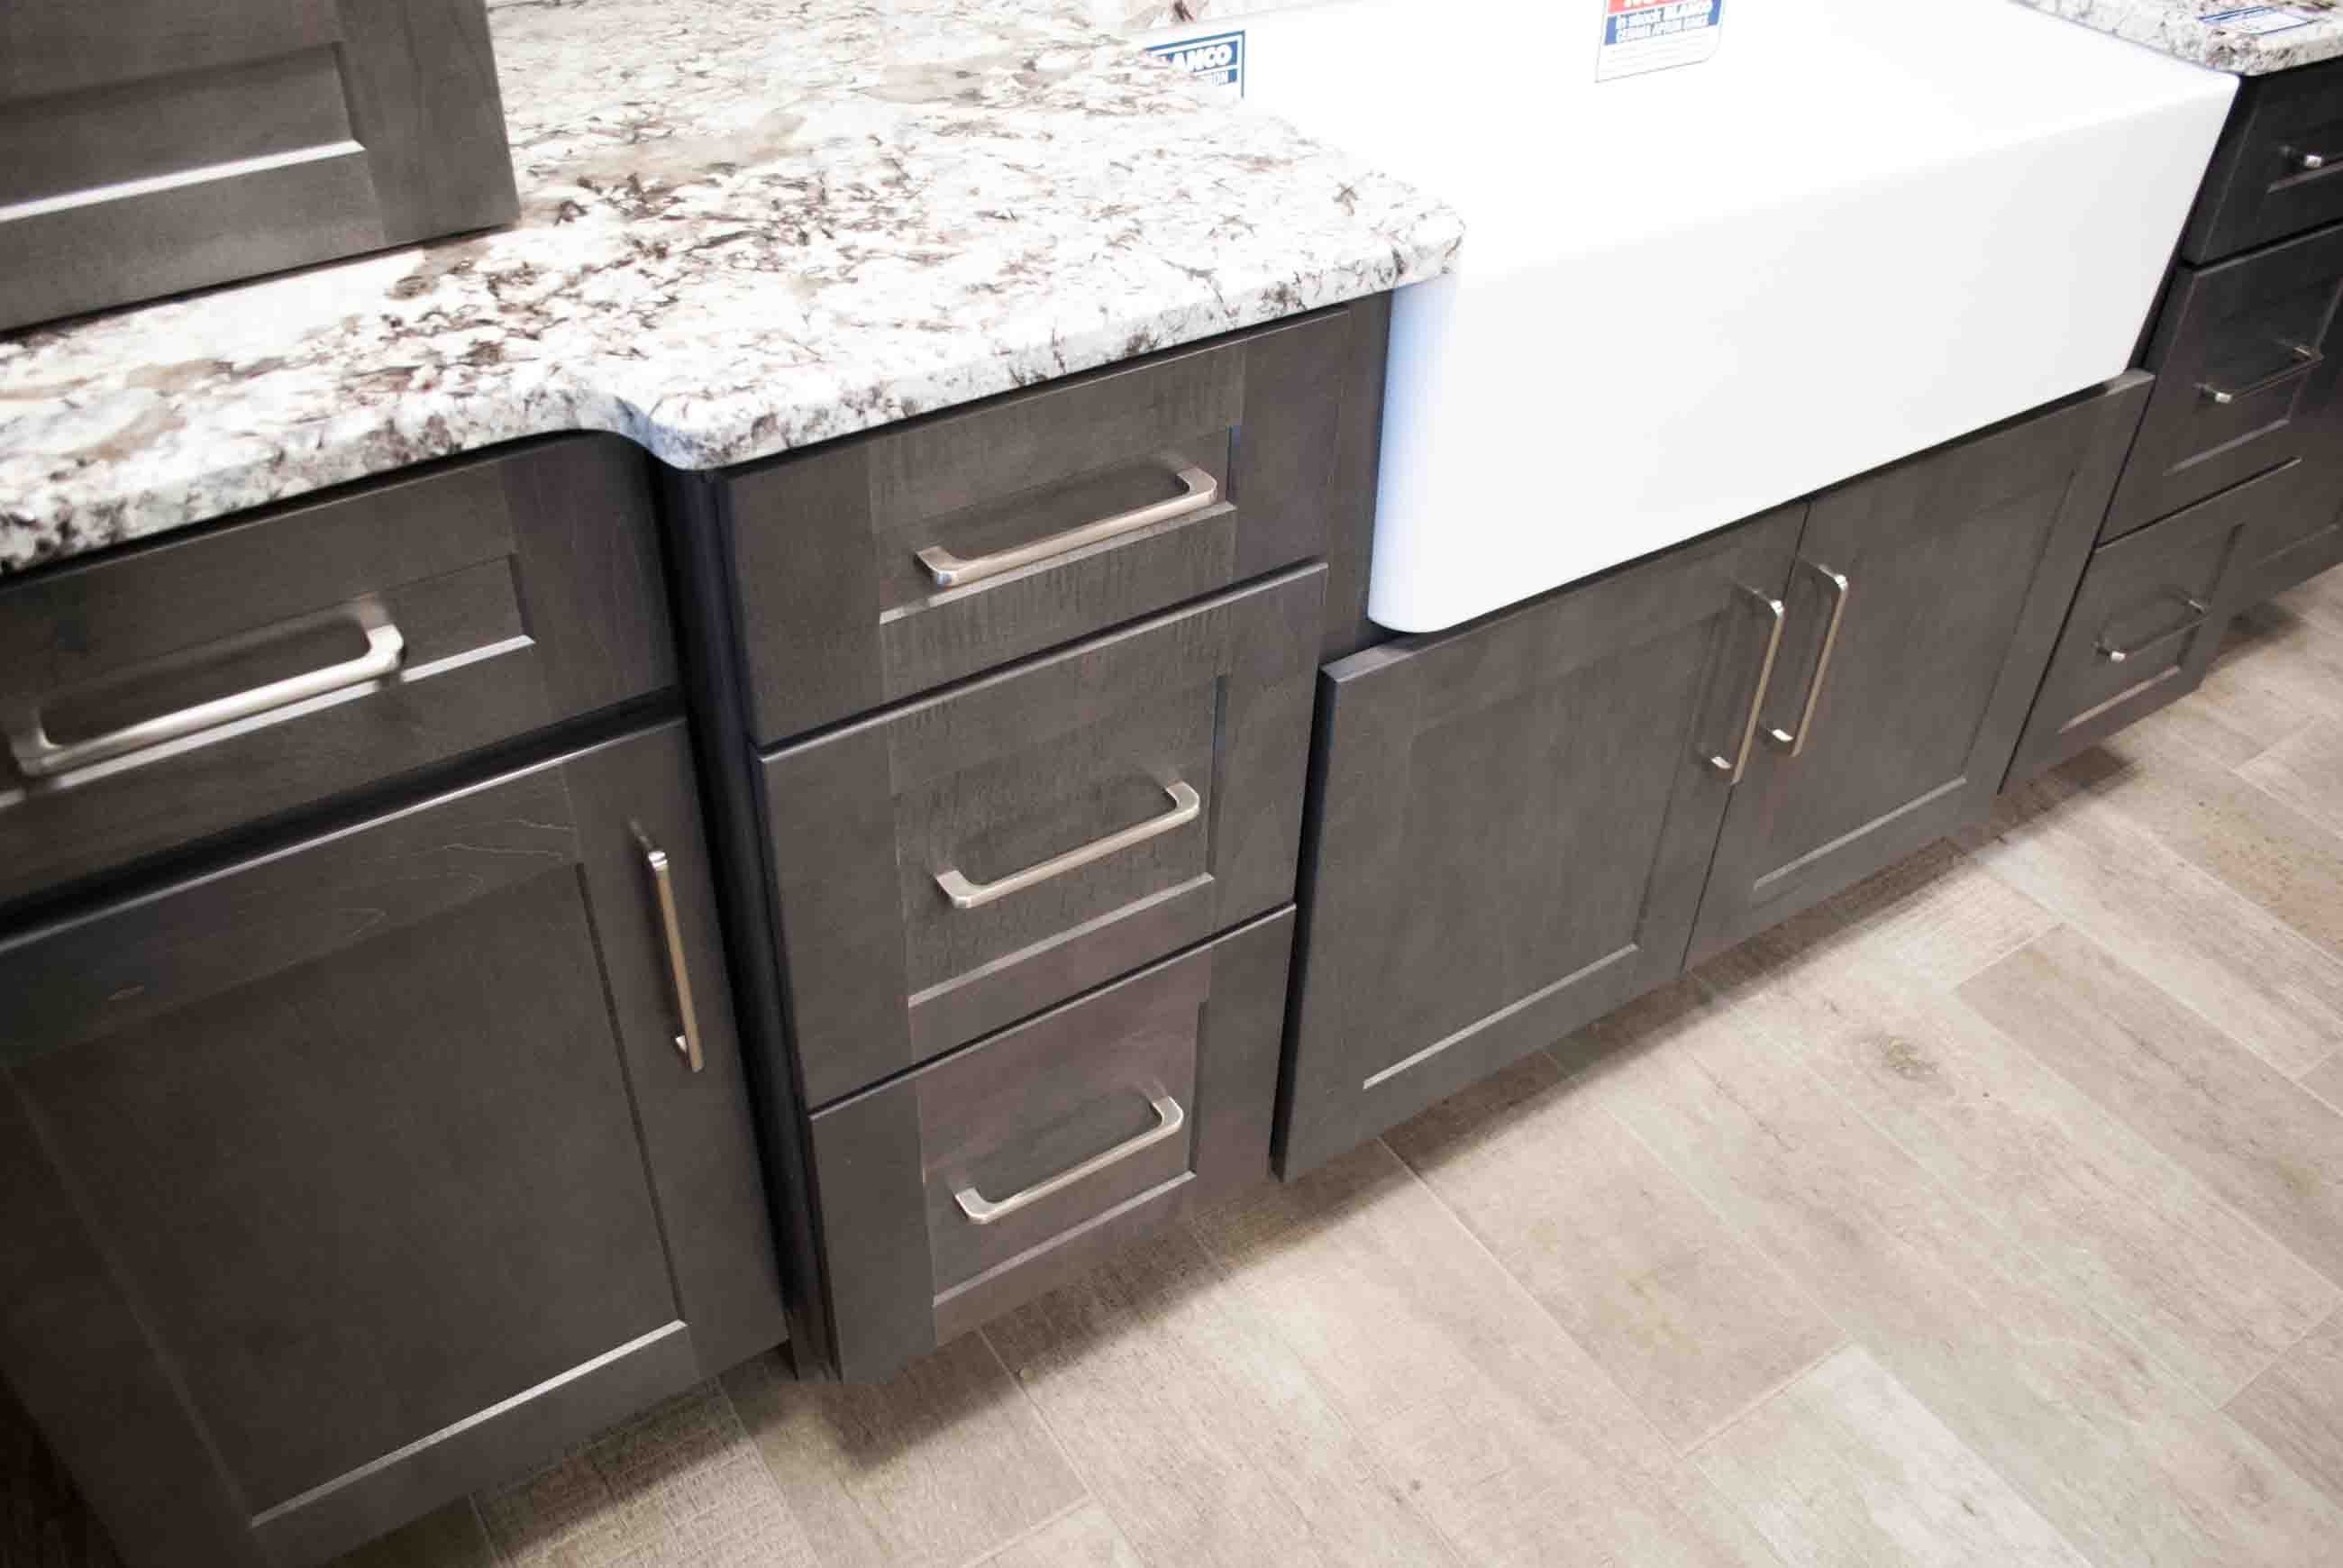 Jamestown Maple Slate Quick Ship Cabinetry And In Stock Jeffrey Alexander Alvar 160mm Satin Nickel Cabinet Hardware Available At Schi Cabinet Kitchen Cabinetry